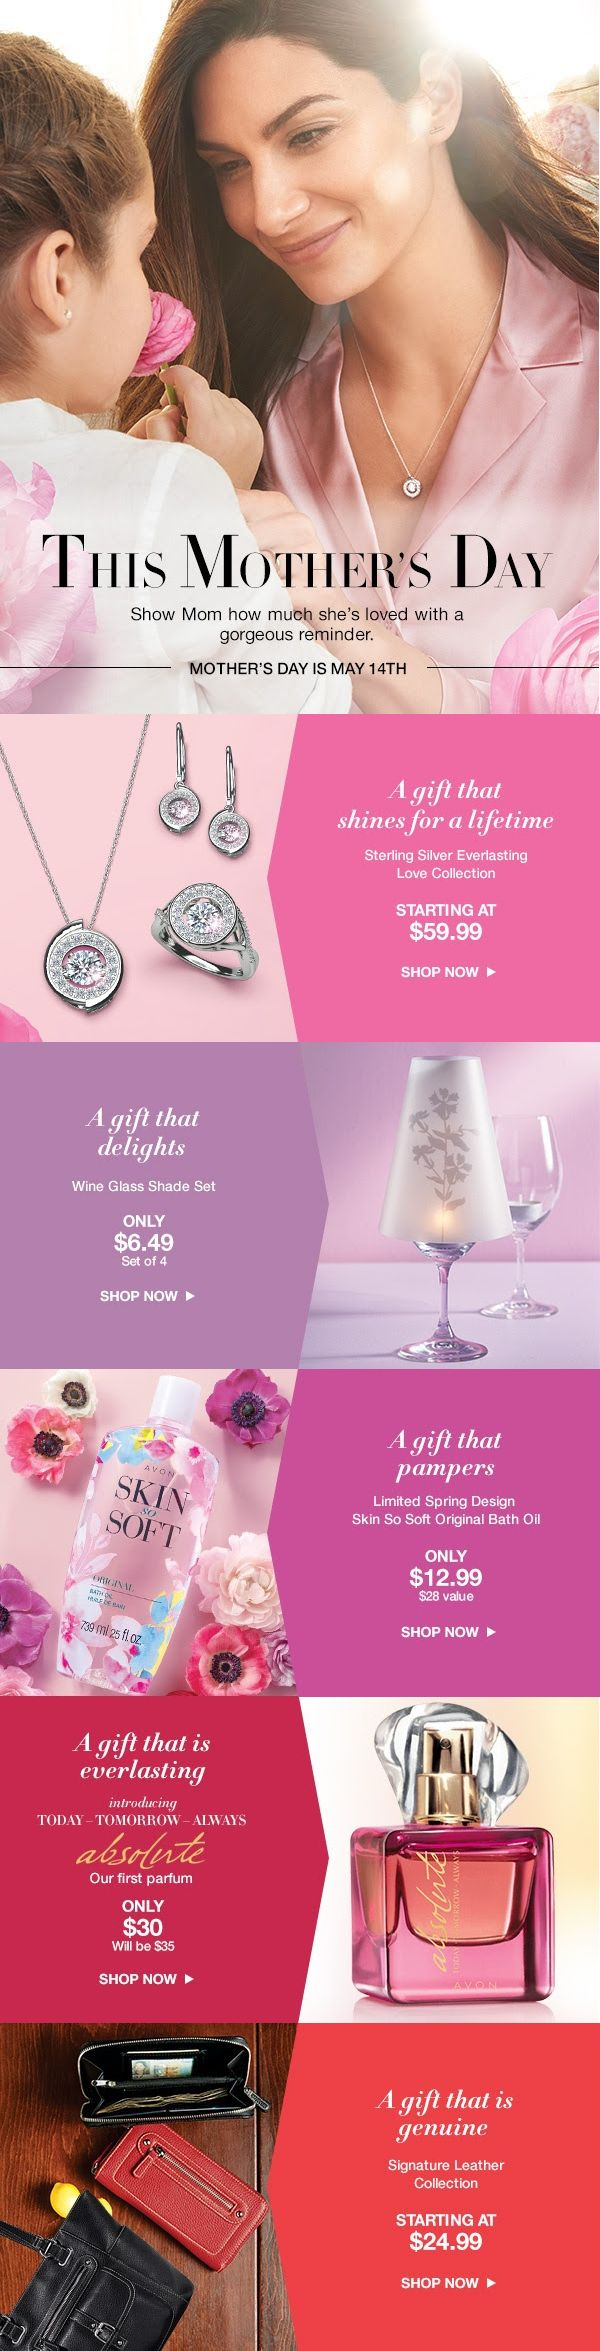 Contact RosemarieClark.AvonRep@gmail.com. Mom's Love Jewelry! Intro Prices Valid until Monday,April 17th, 2017.